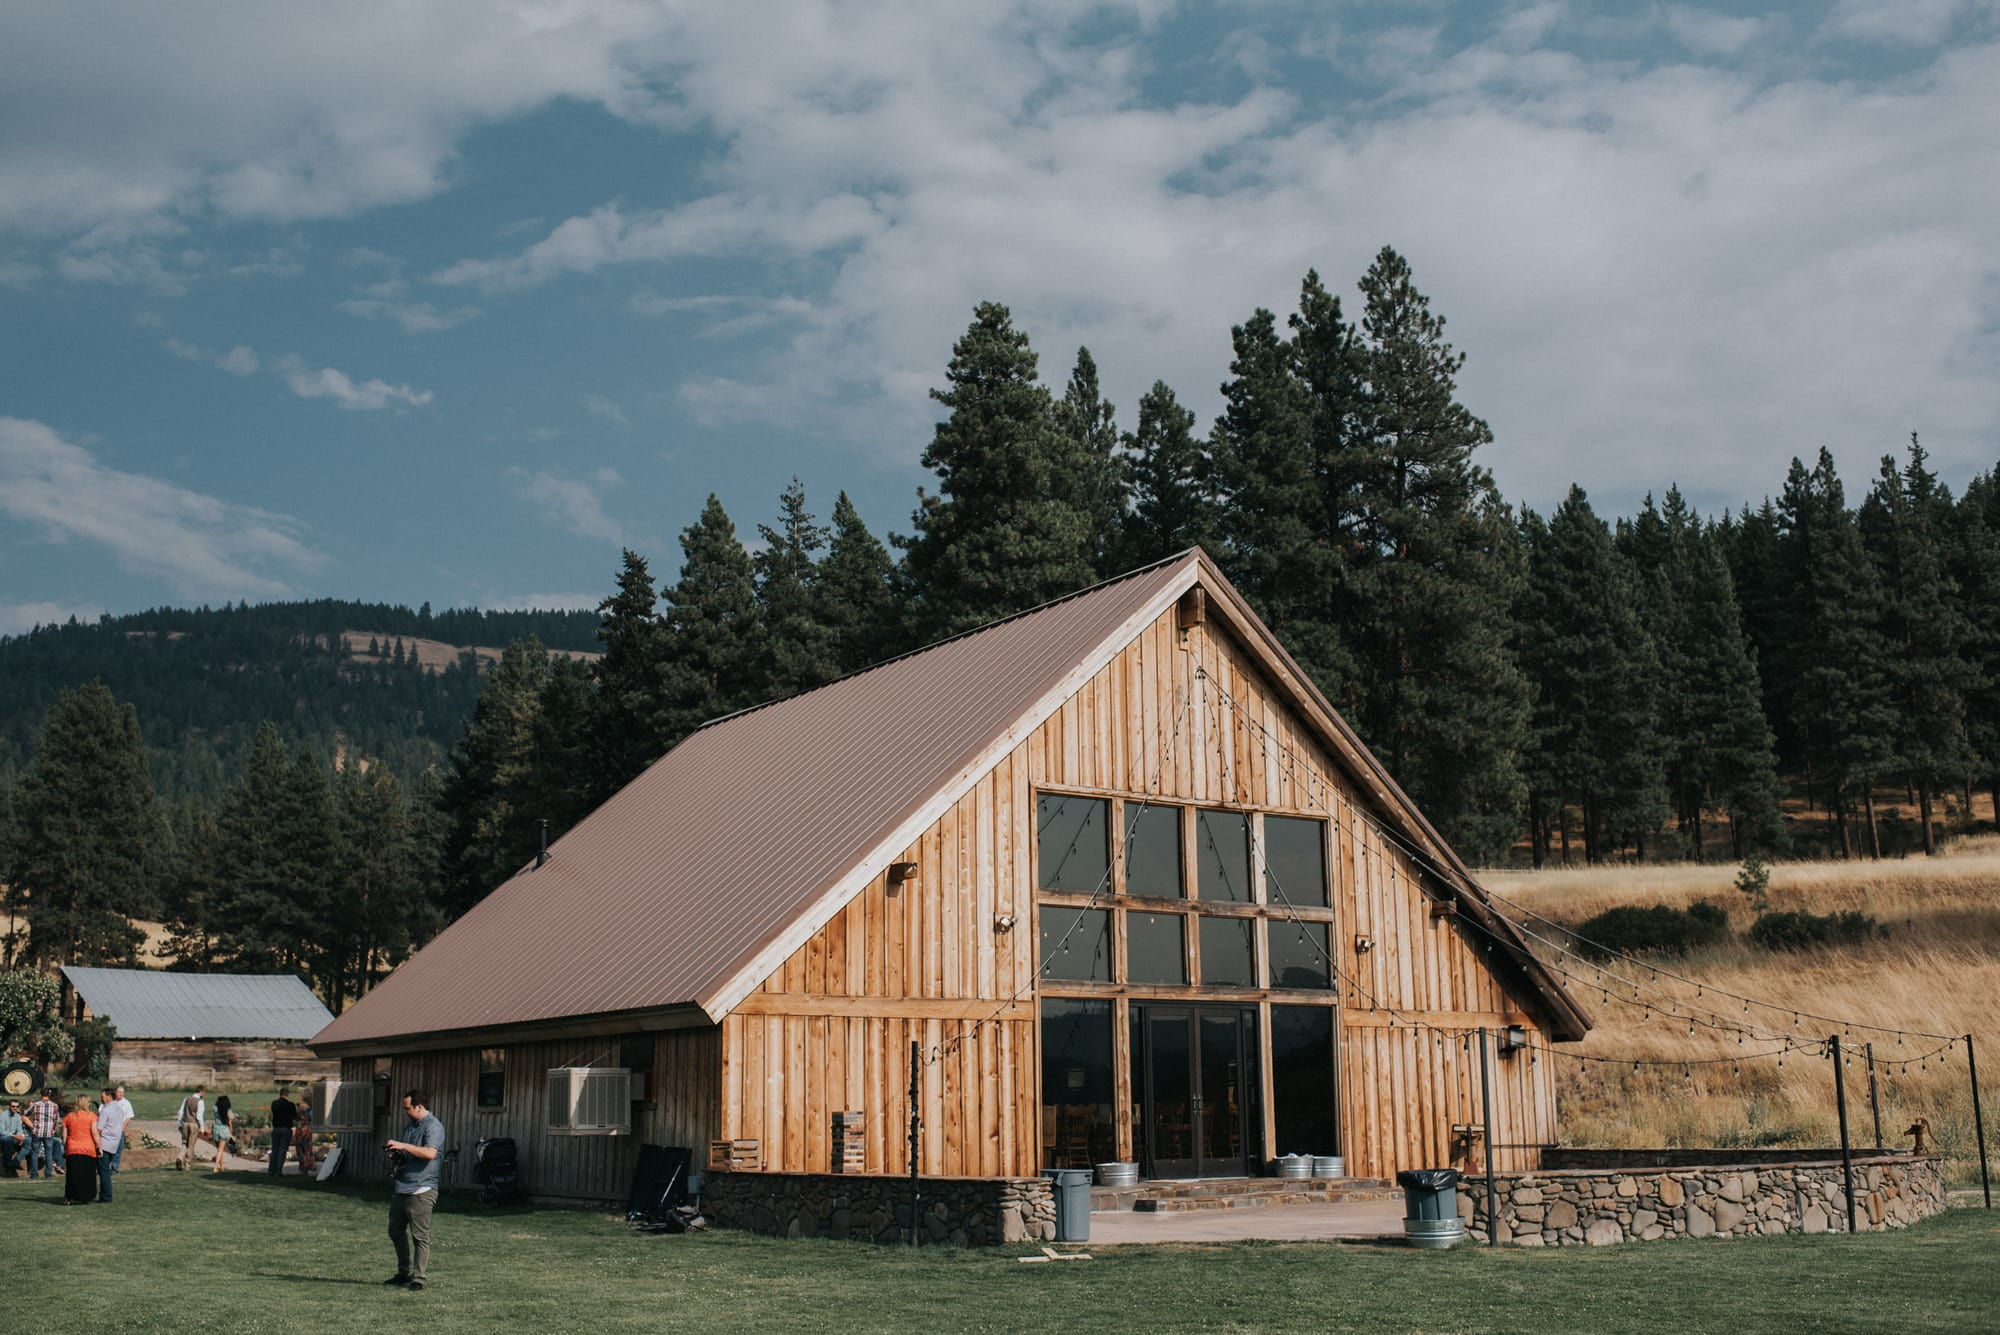 back view of the main wedding barn at the cattle barn